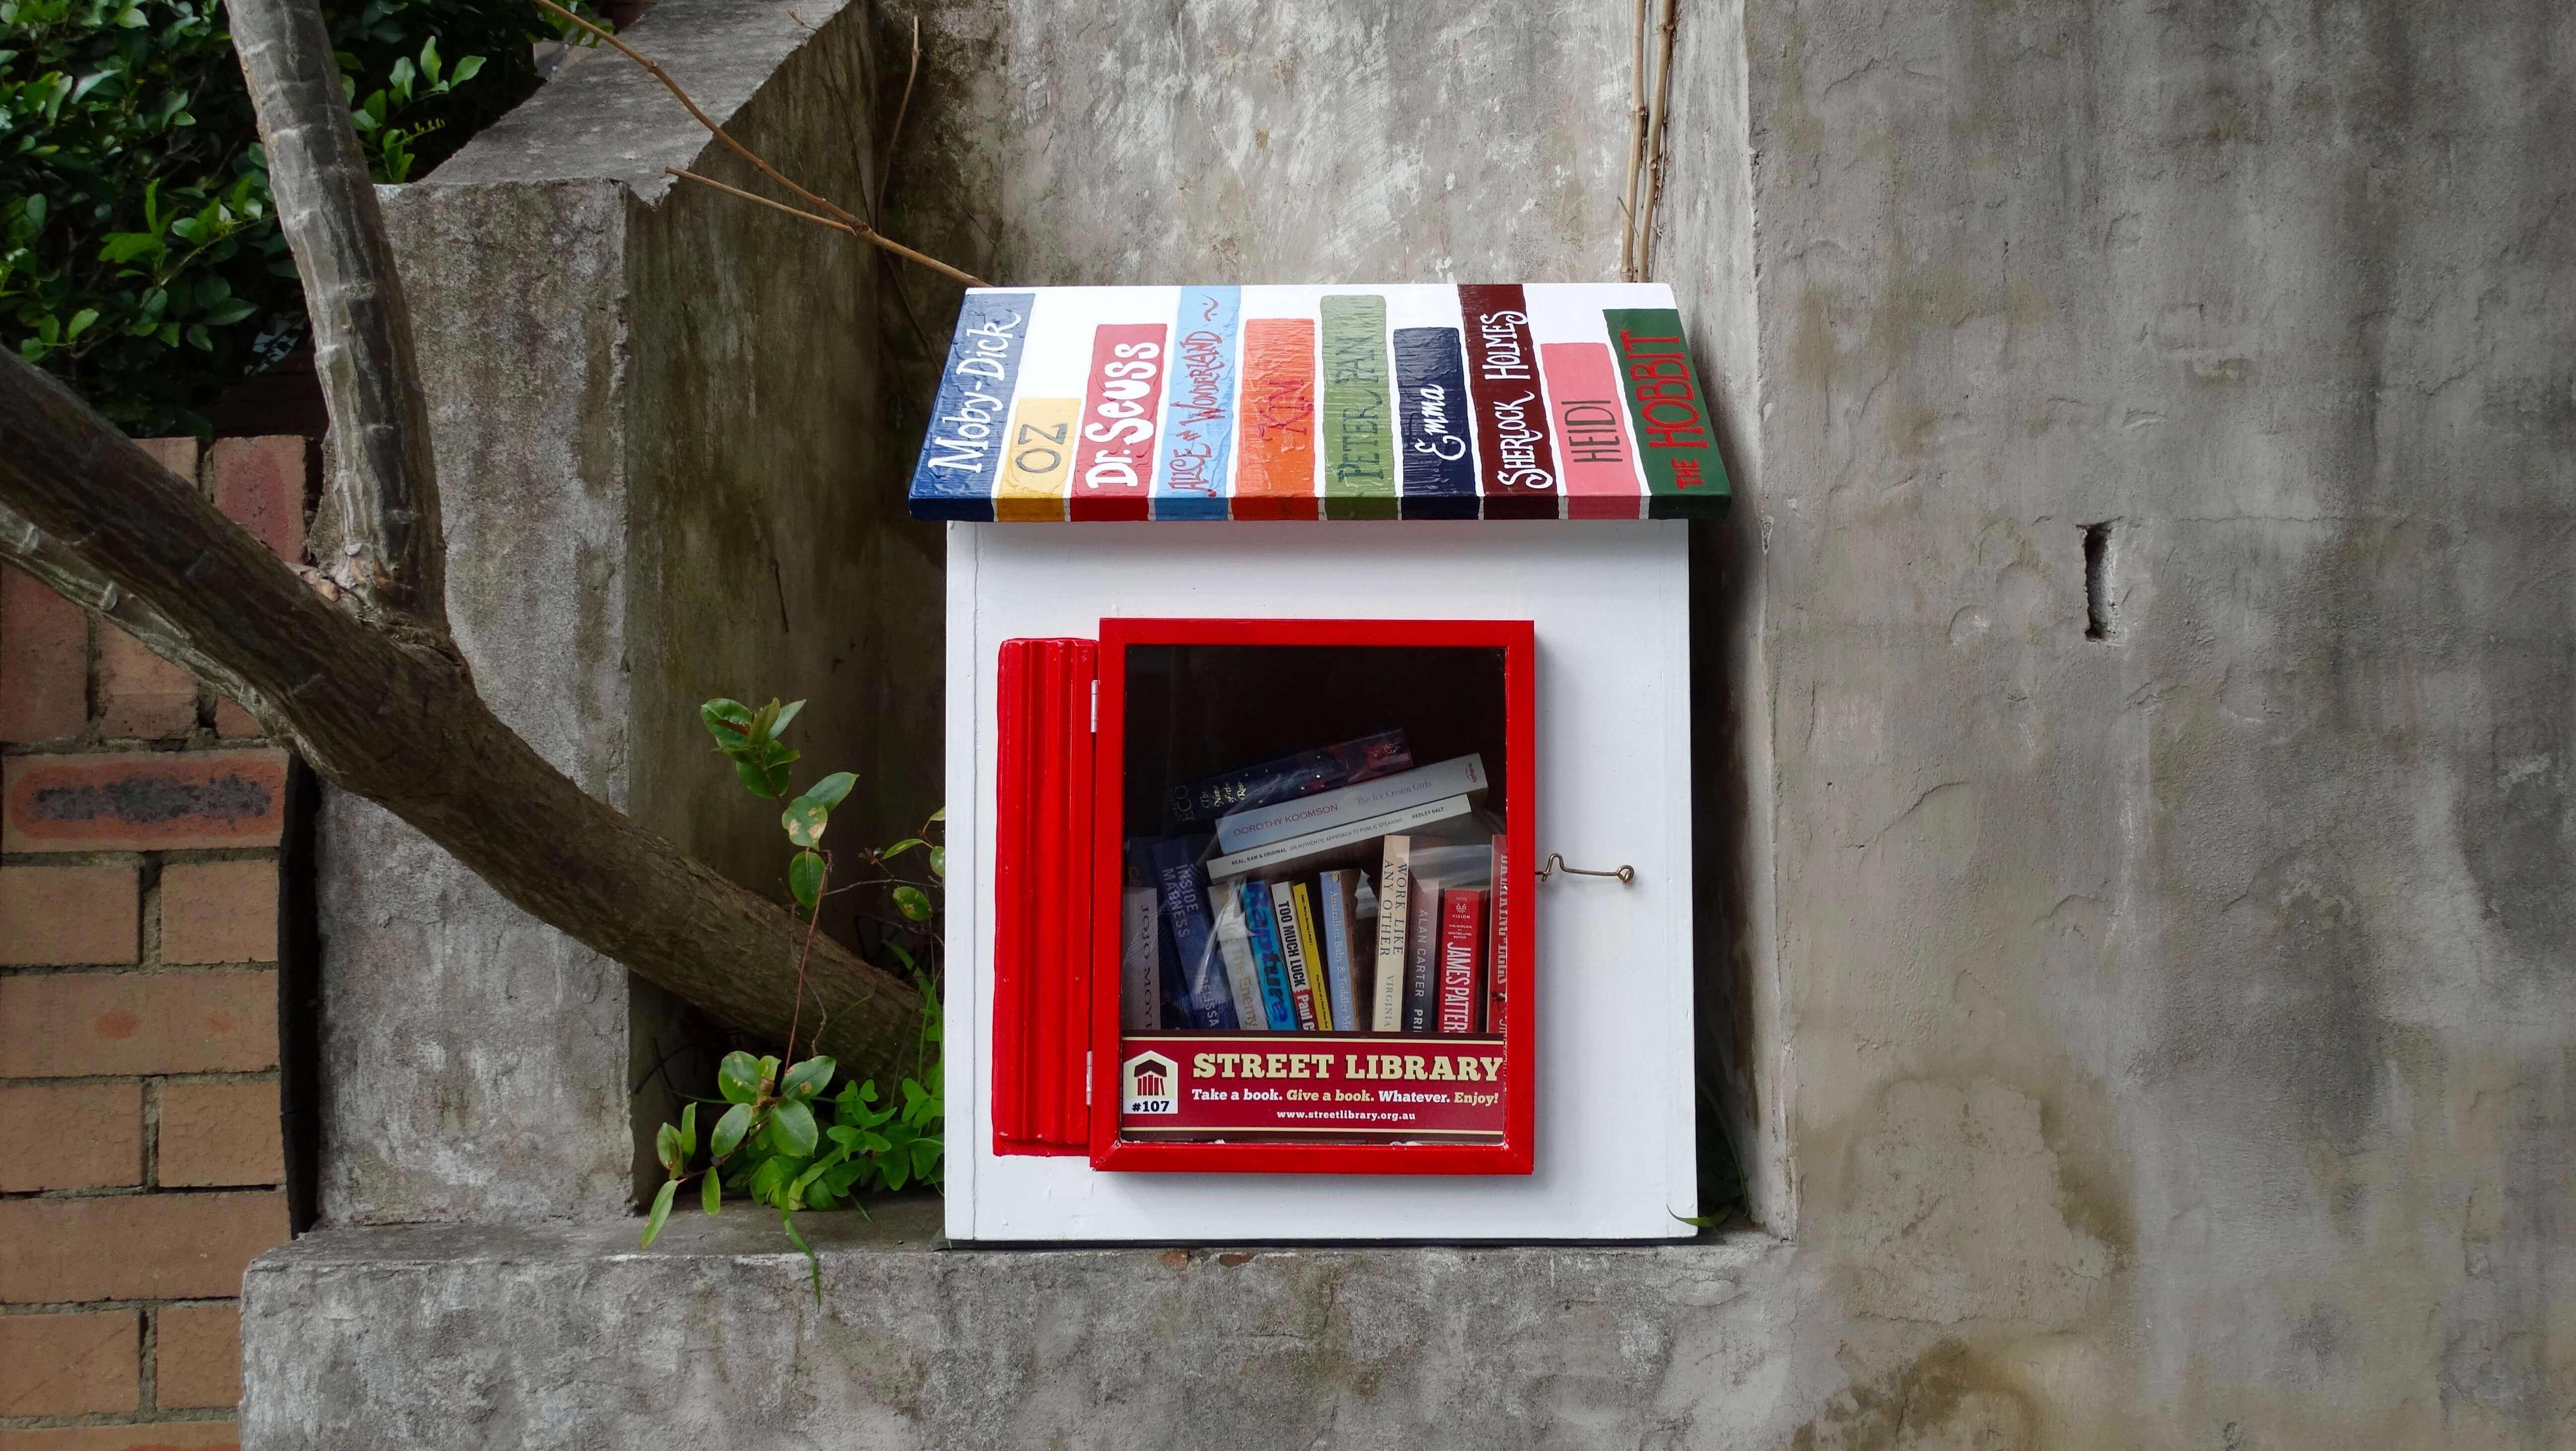 Tiny Home Designs: Take, Give, Share Books: Australia's Street Library